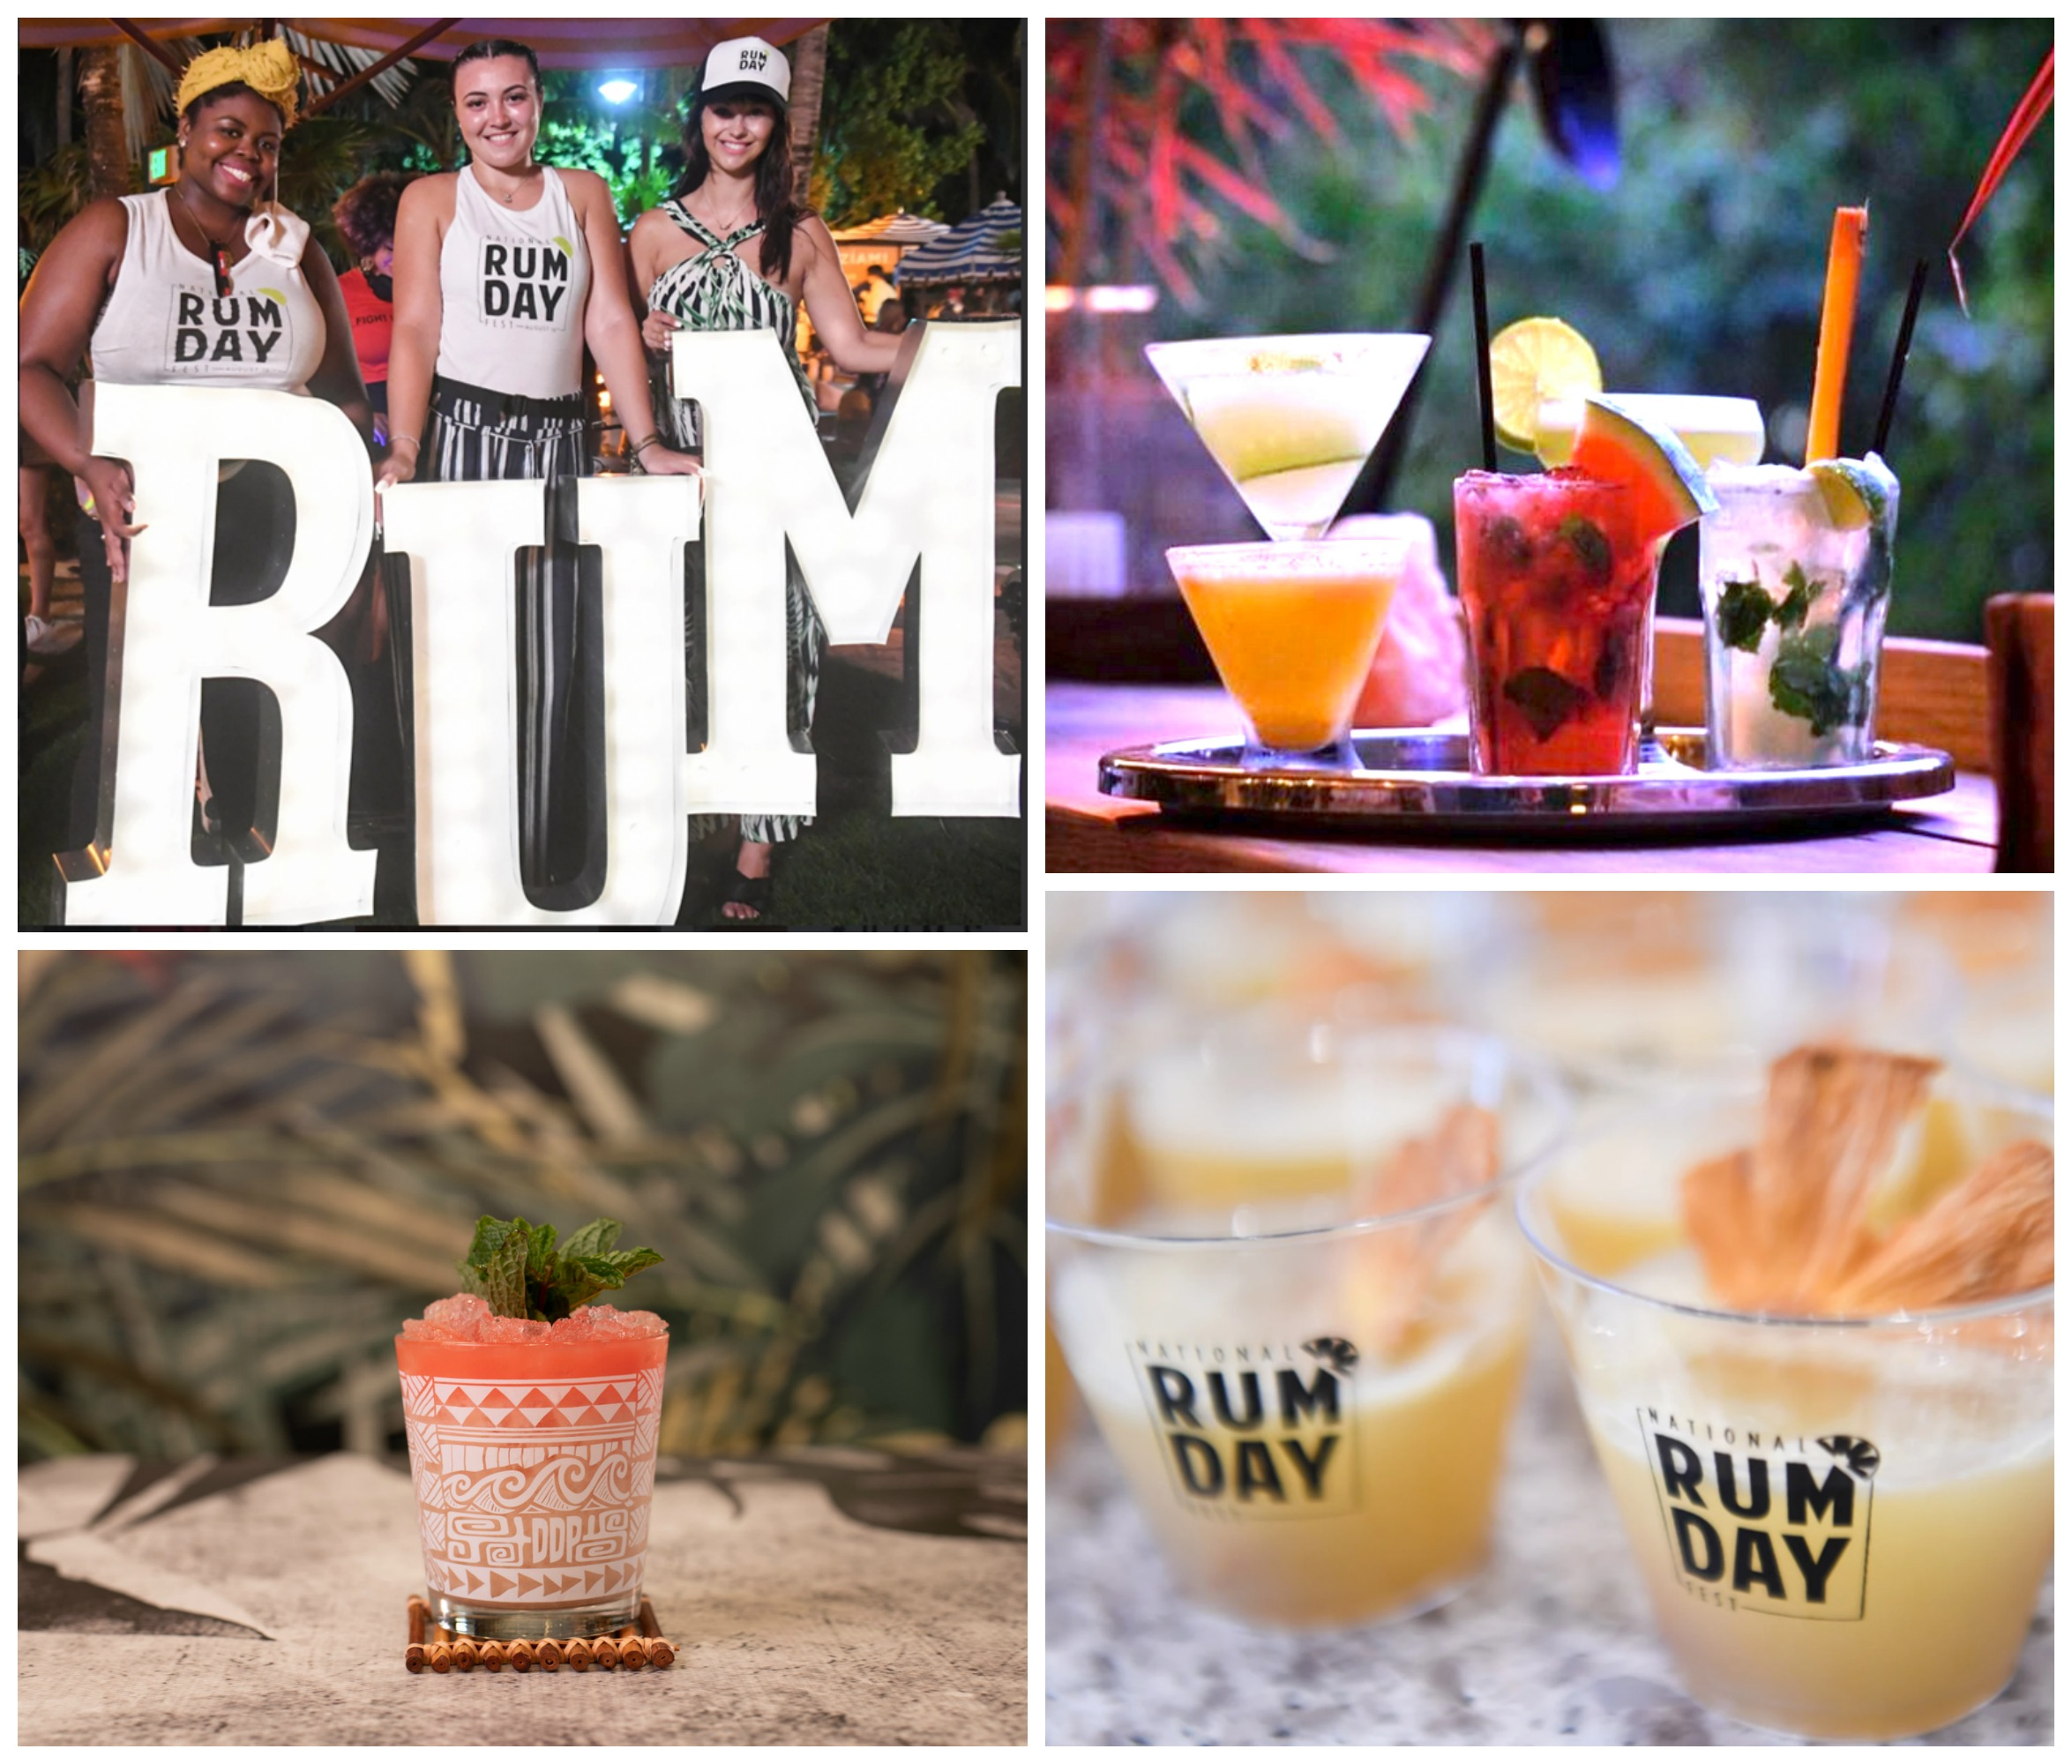 National Rum Day 2019 in Miami MIAbites